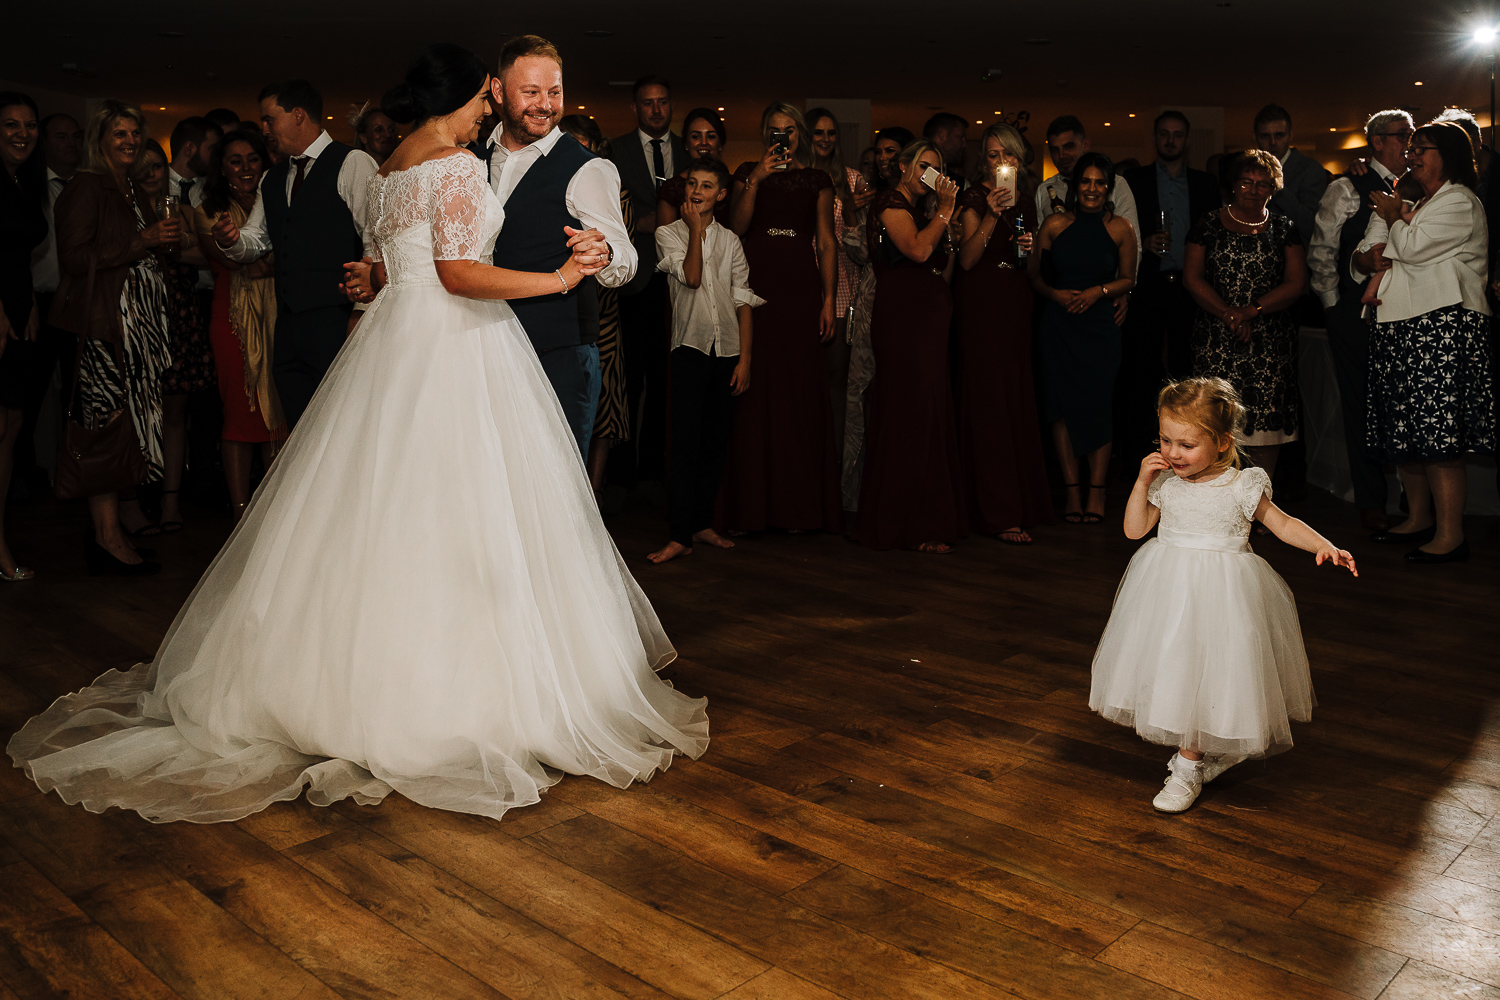 First dance with daughter